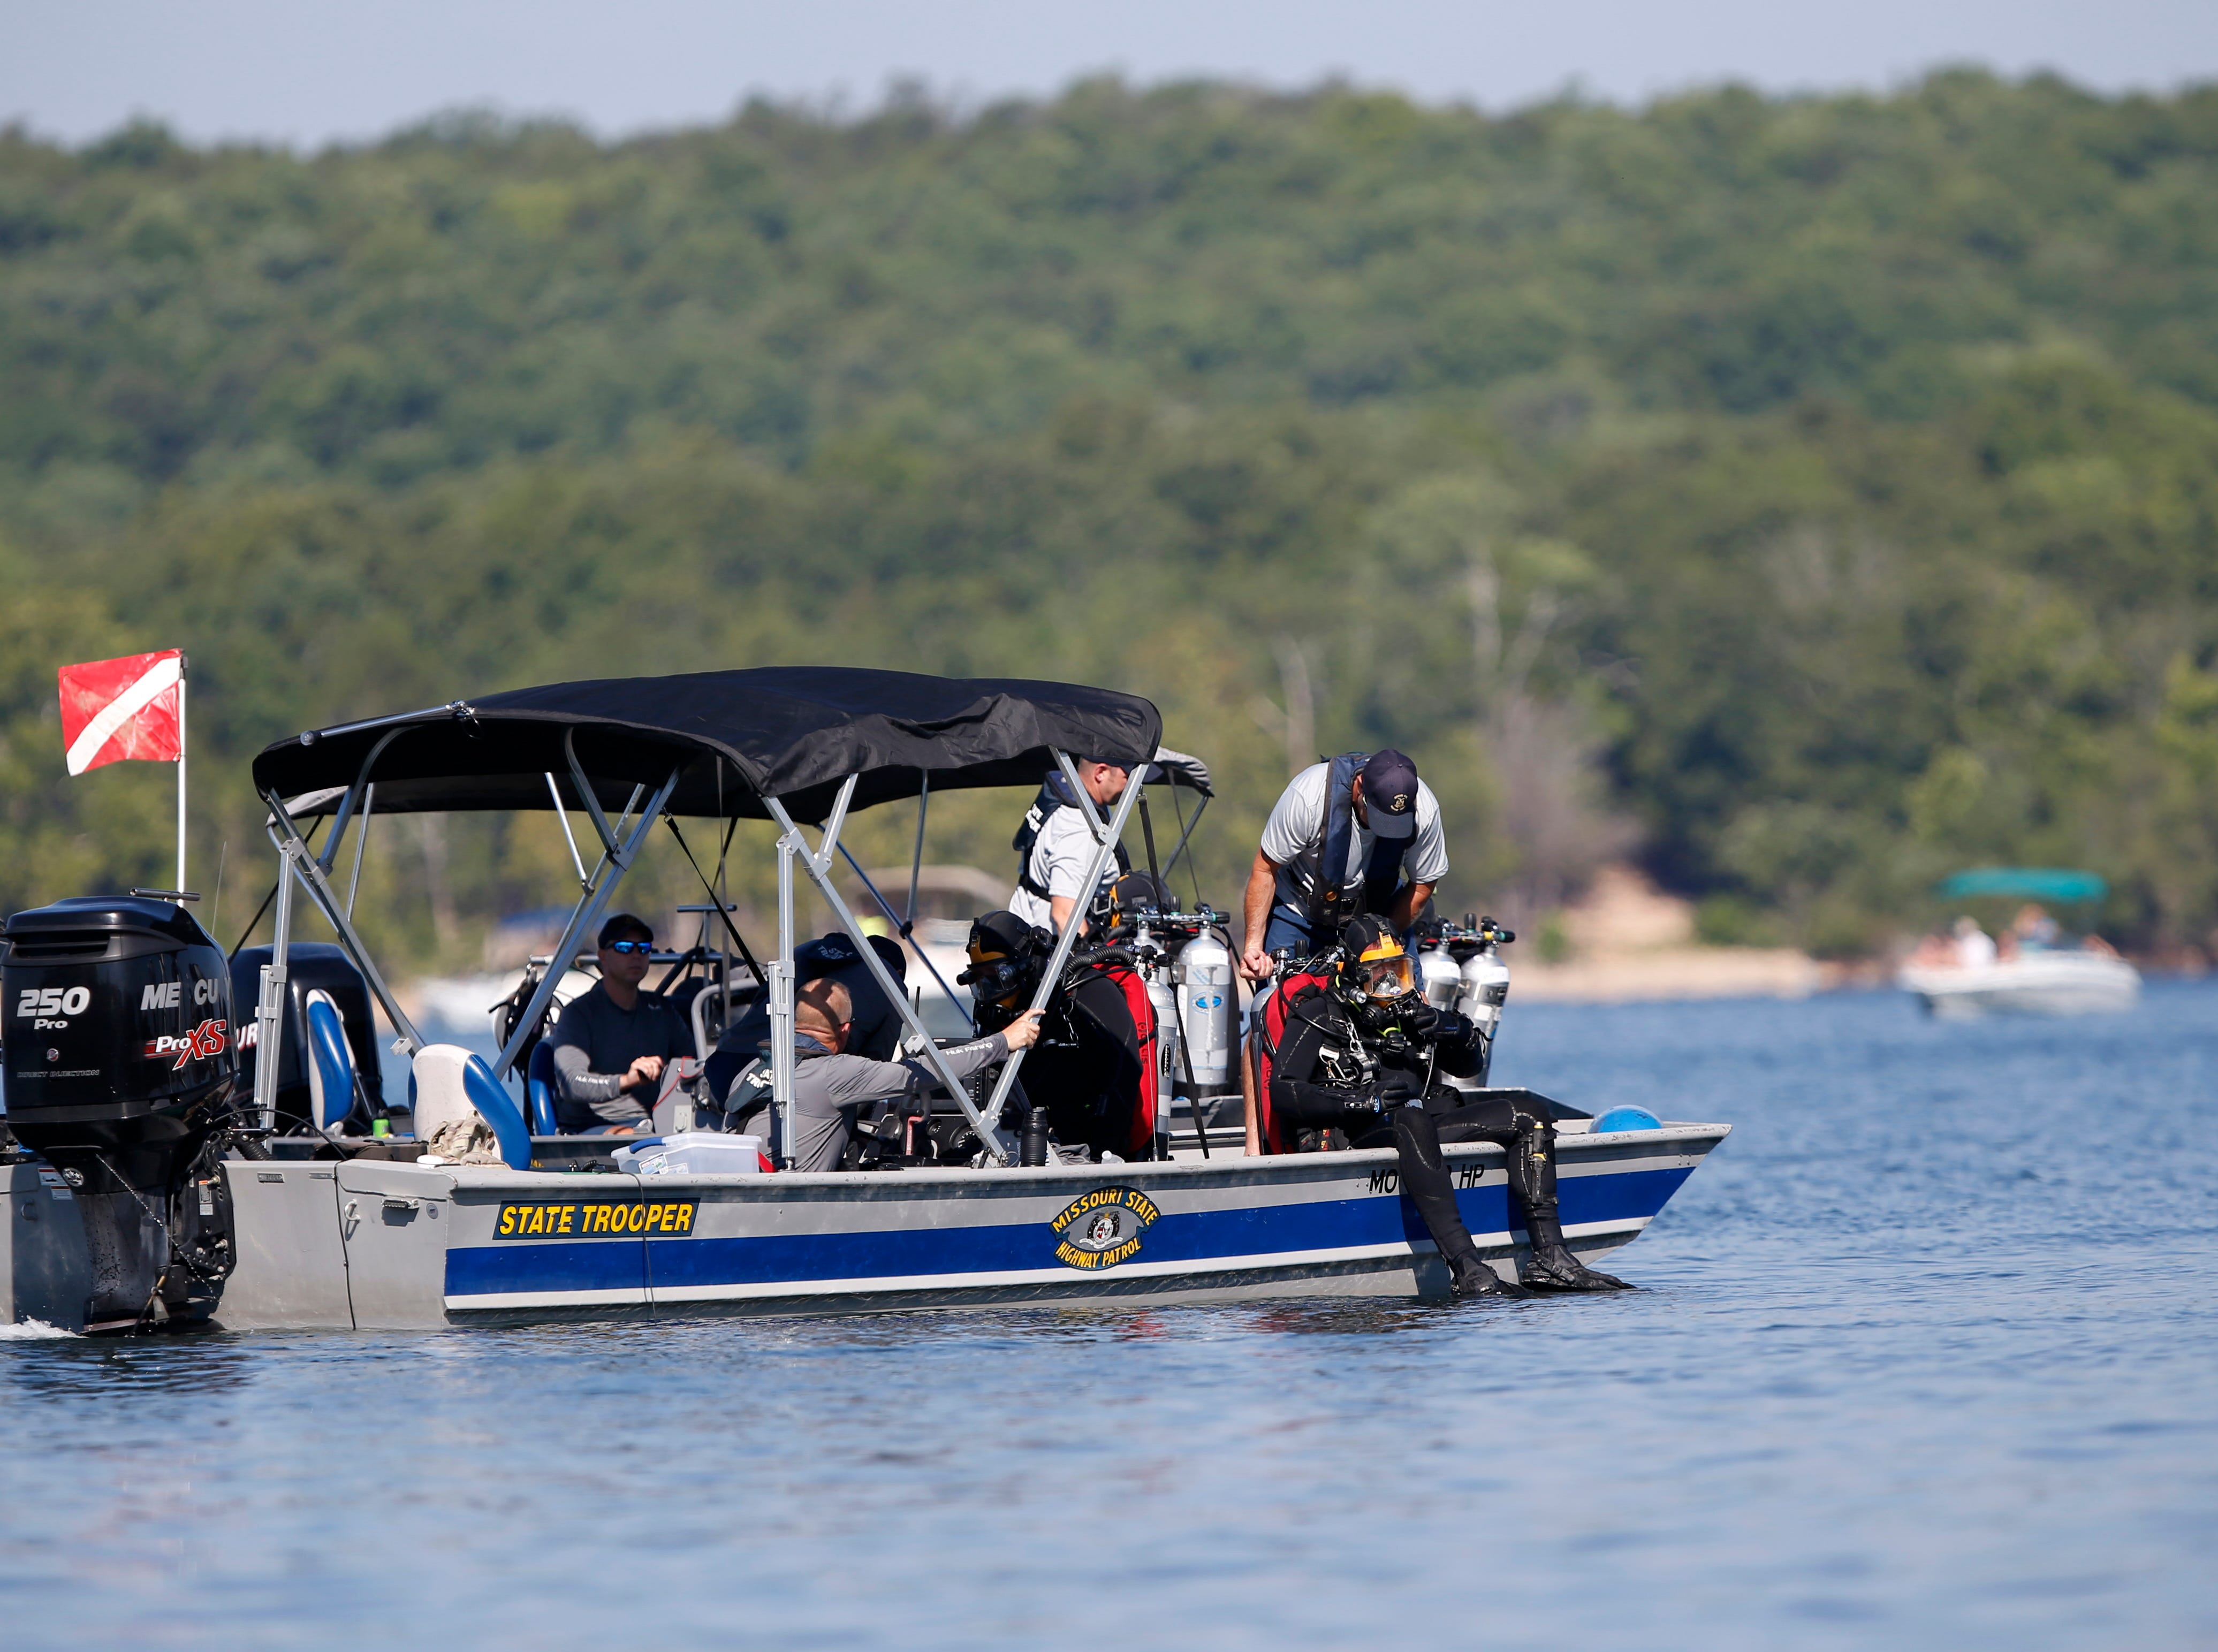 Divers in the water as part of salvage operation for the duck boat in Table Rock Lake on Monday, July 23, 2018.